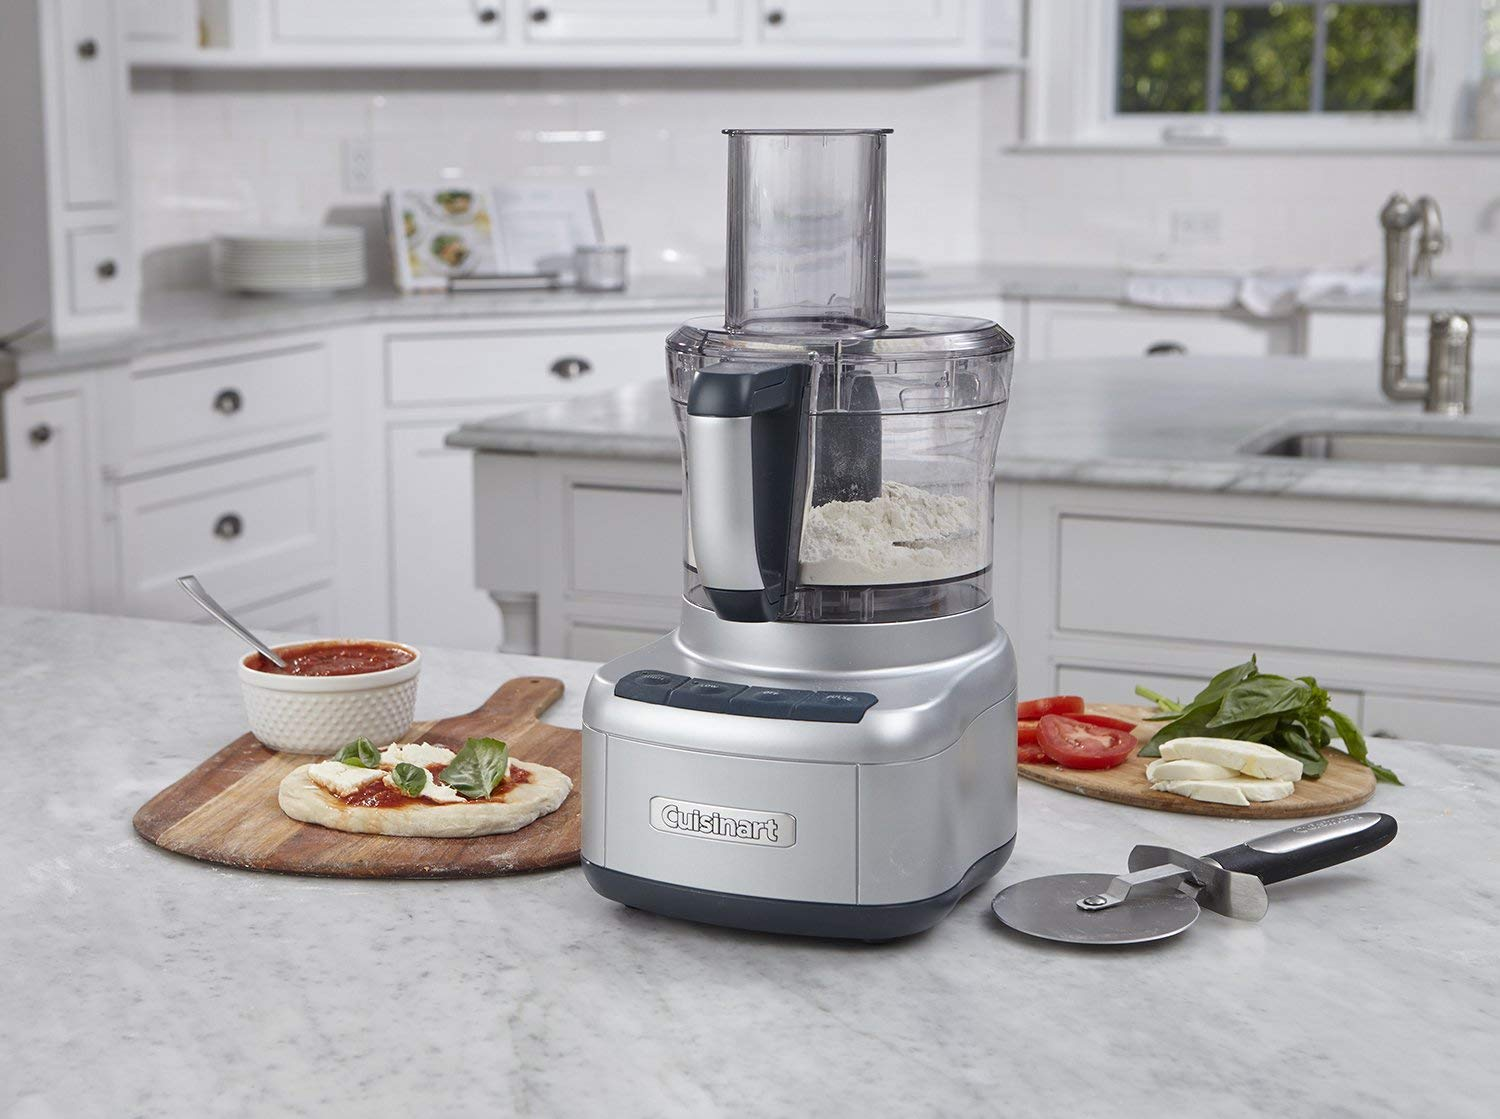 Cuisinart FP-8SV Elemental 8-Cup Food Processor